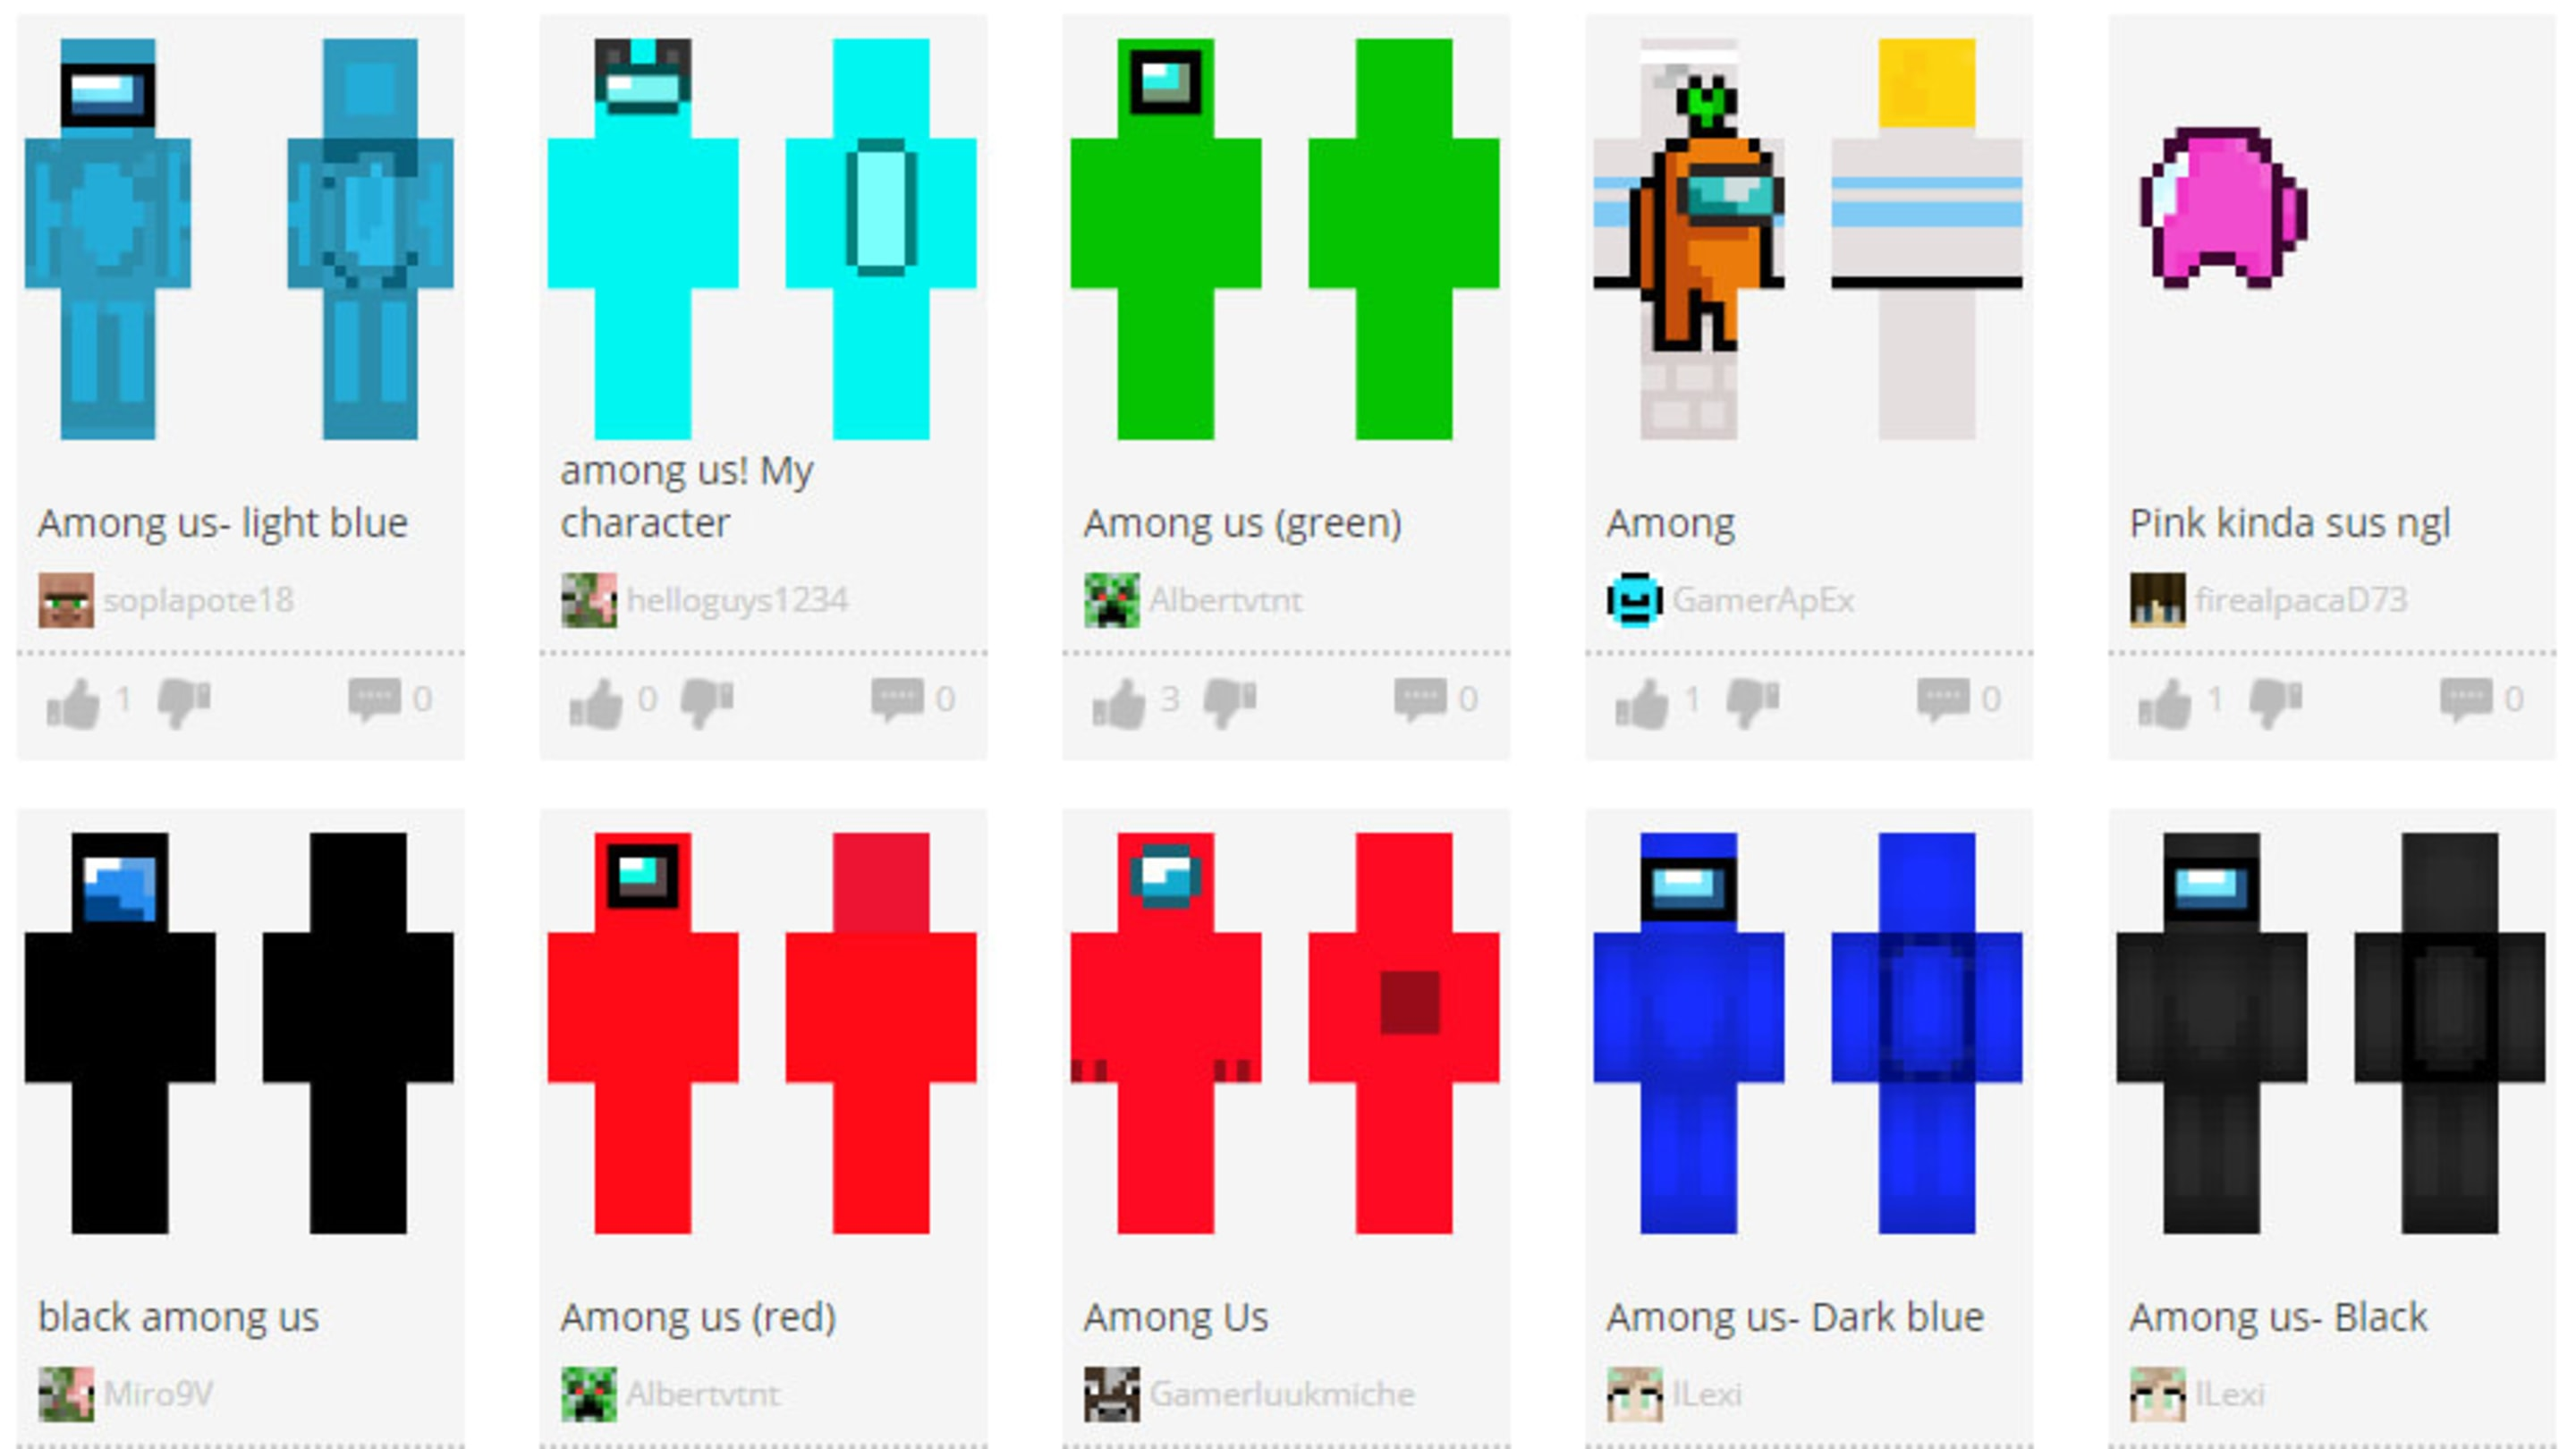 Among Us Minecraft Skin: How to Get - Flipboard